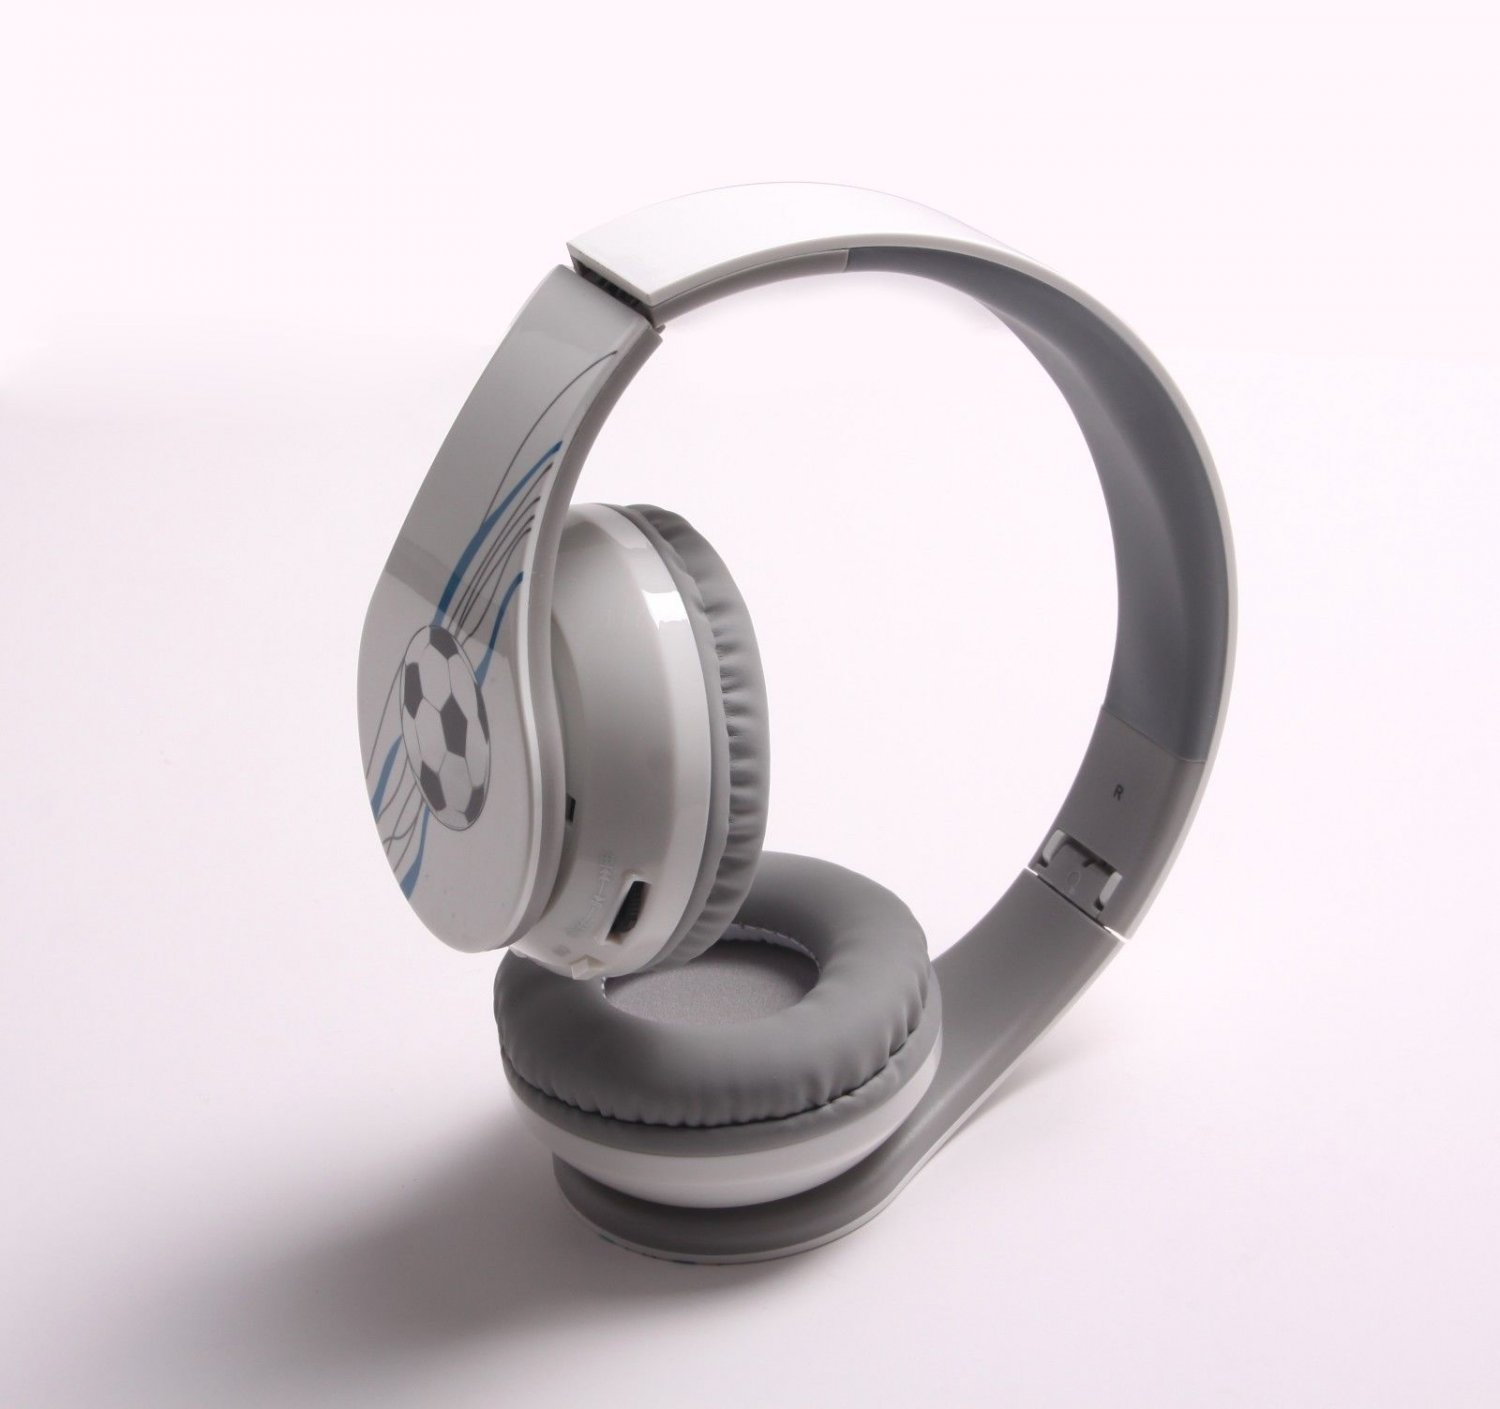 White Football & Hi-Fi Stereo Bluetooth 4.0 Headphones for Cell Phone Tablet PC Laptop